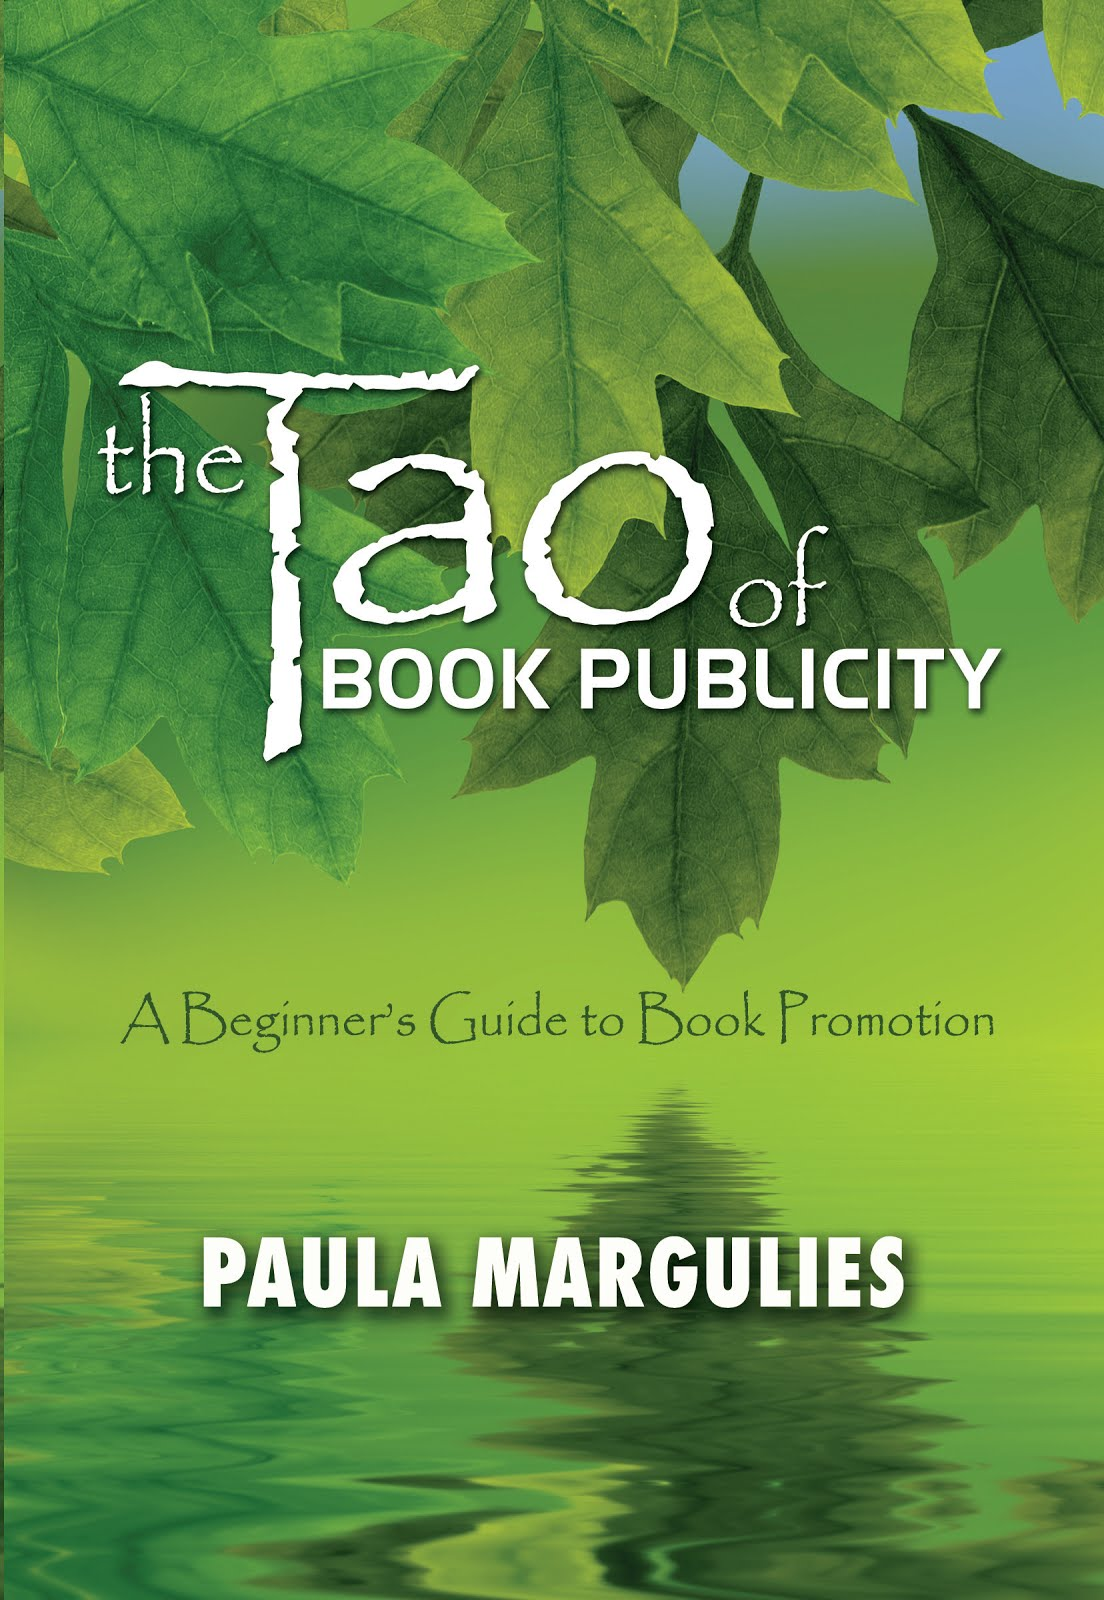 The Tao of Book Publicity: A Beginner's Guide to Book Promotion